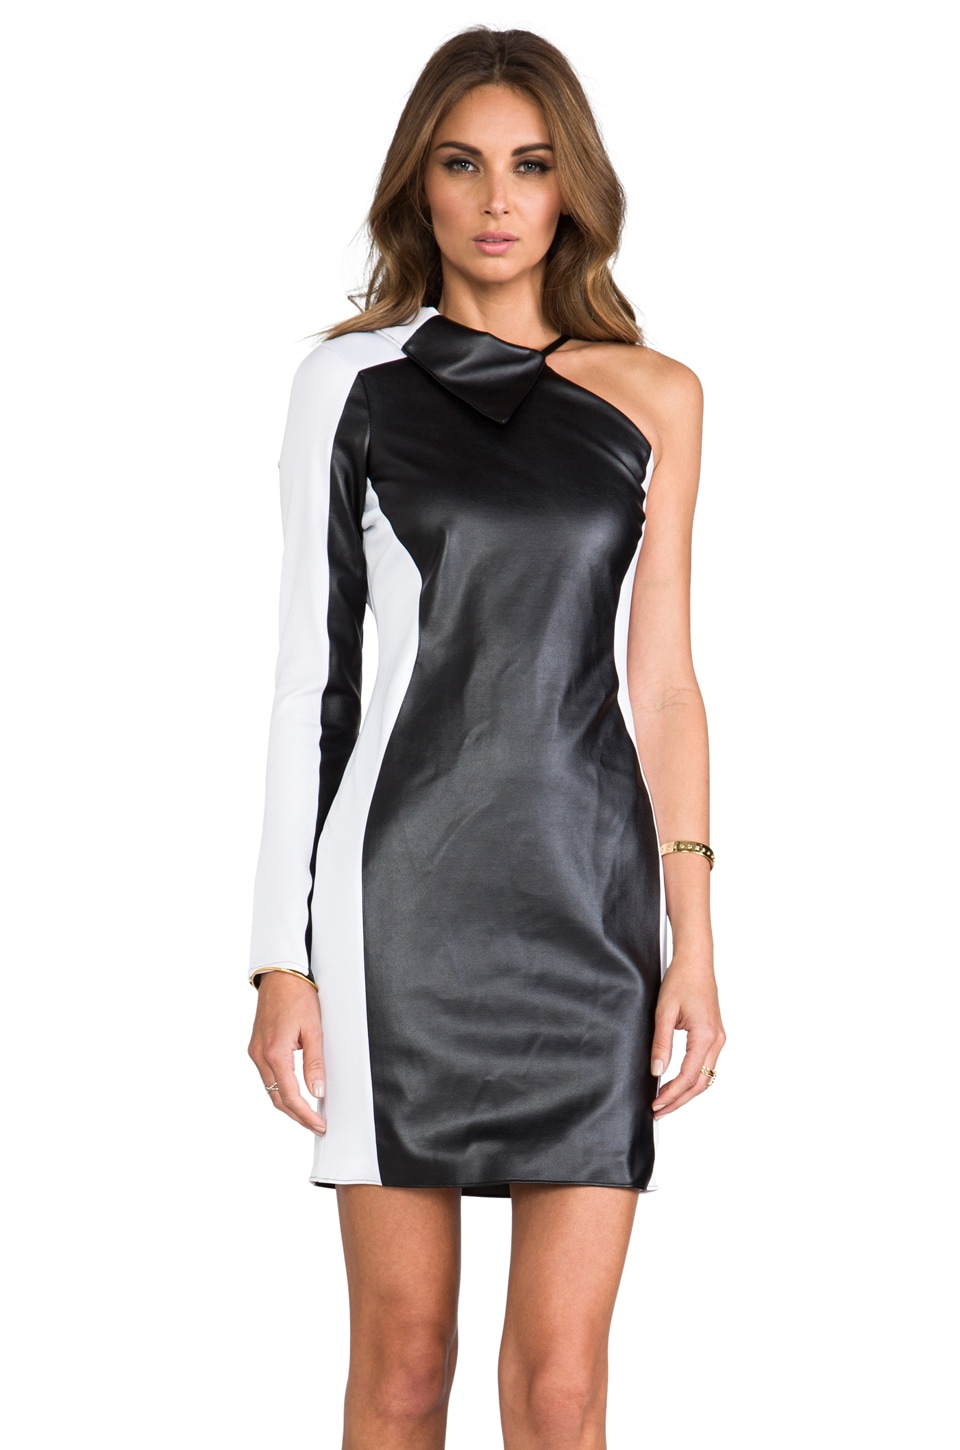 Boulee Mila Dress in Black/White